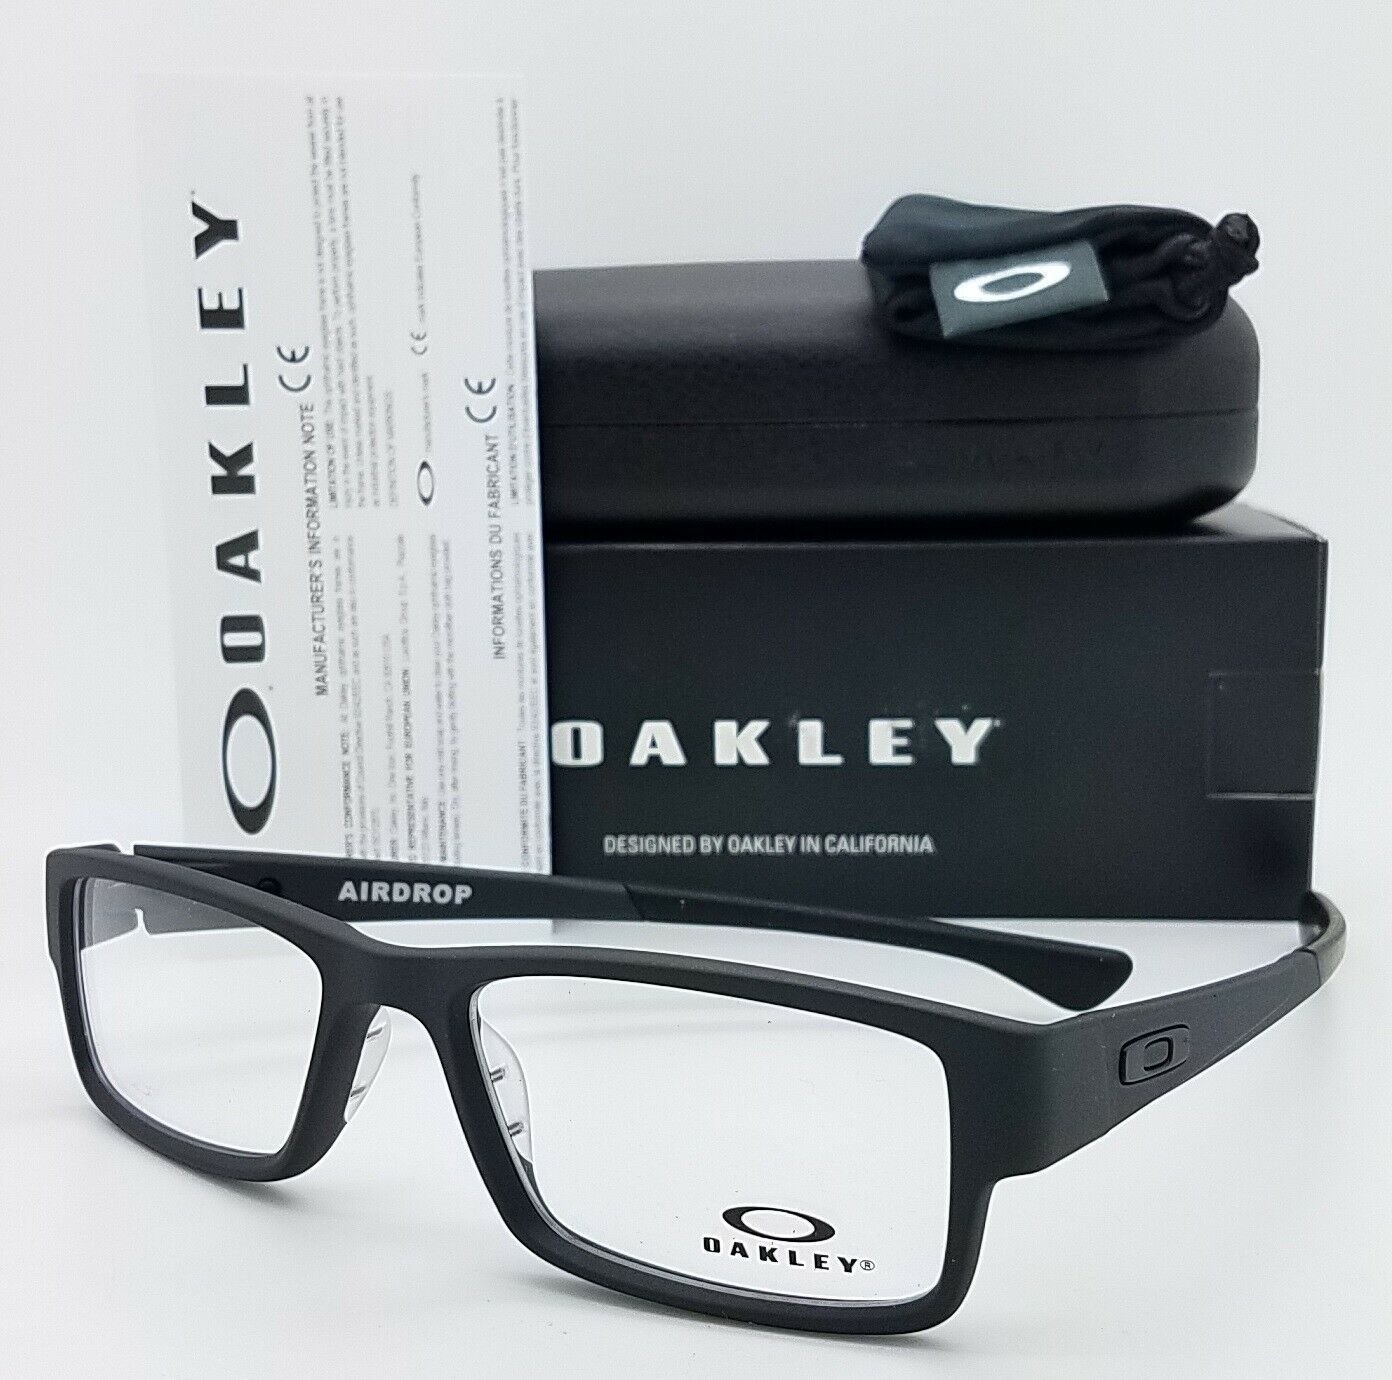 NEW Oakley Airdrop RX Optical Frame Satin Black OX8046 0155 55mm AUTHENTIC 8046